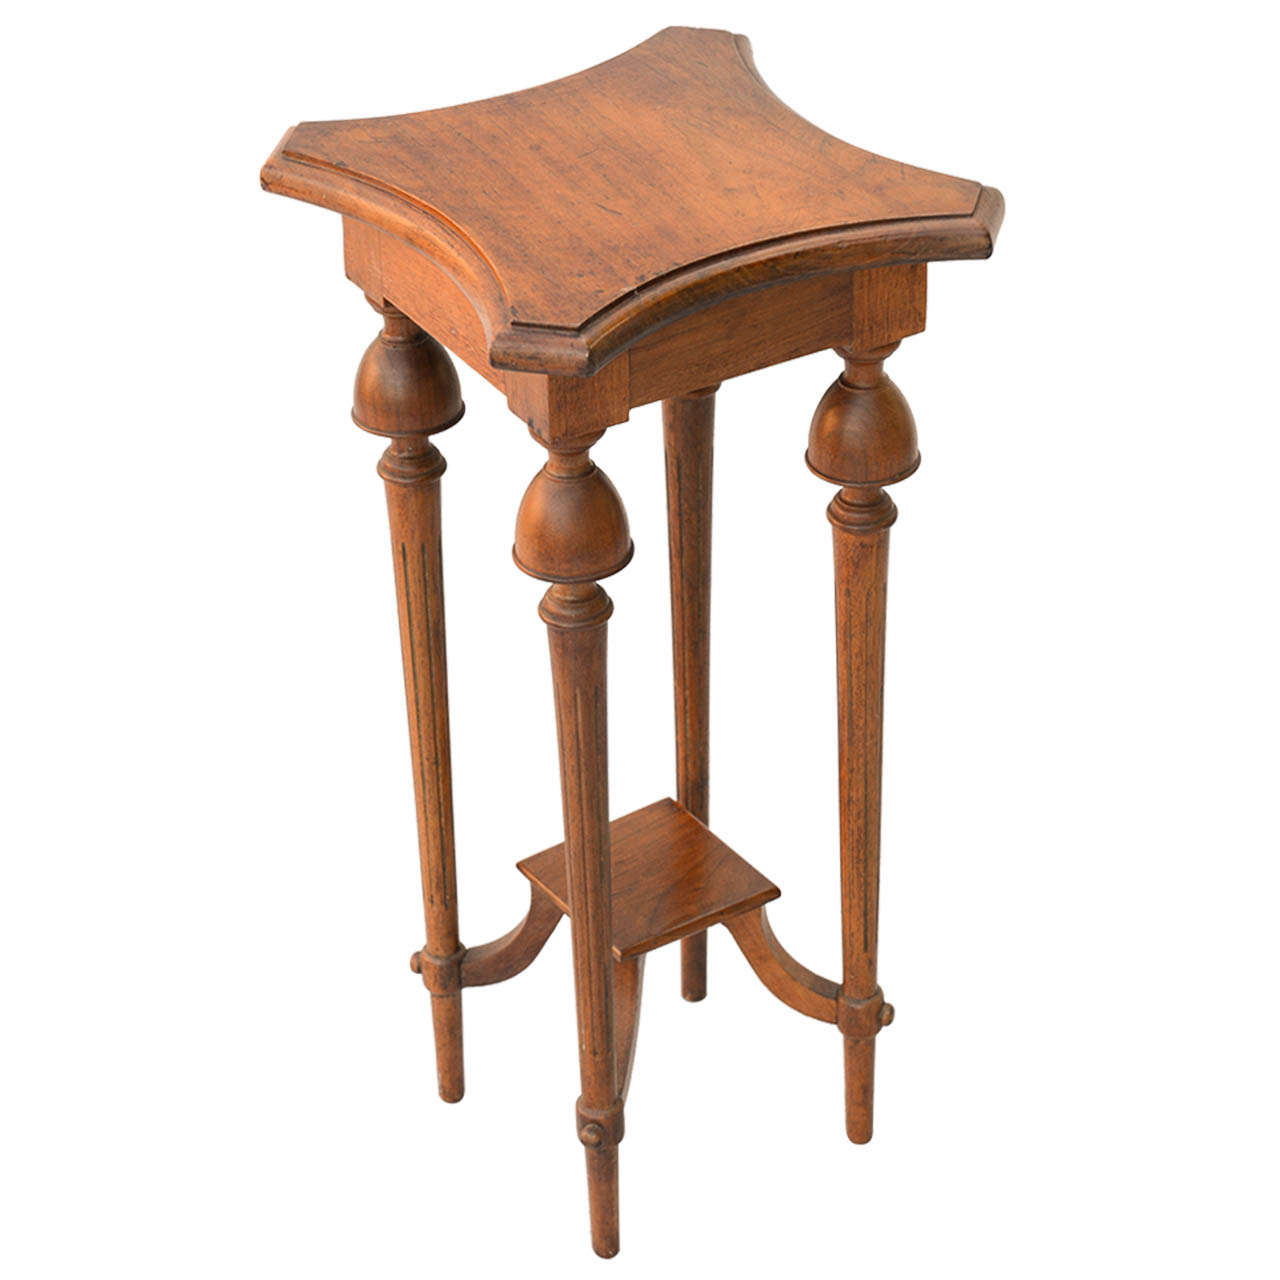 Unusual Accent Tables Unusual Walnut Accent Table At 1stdibs